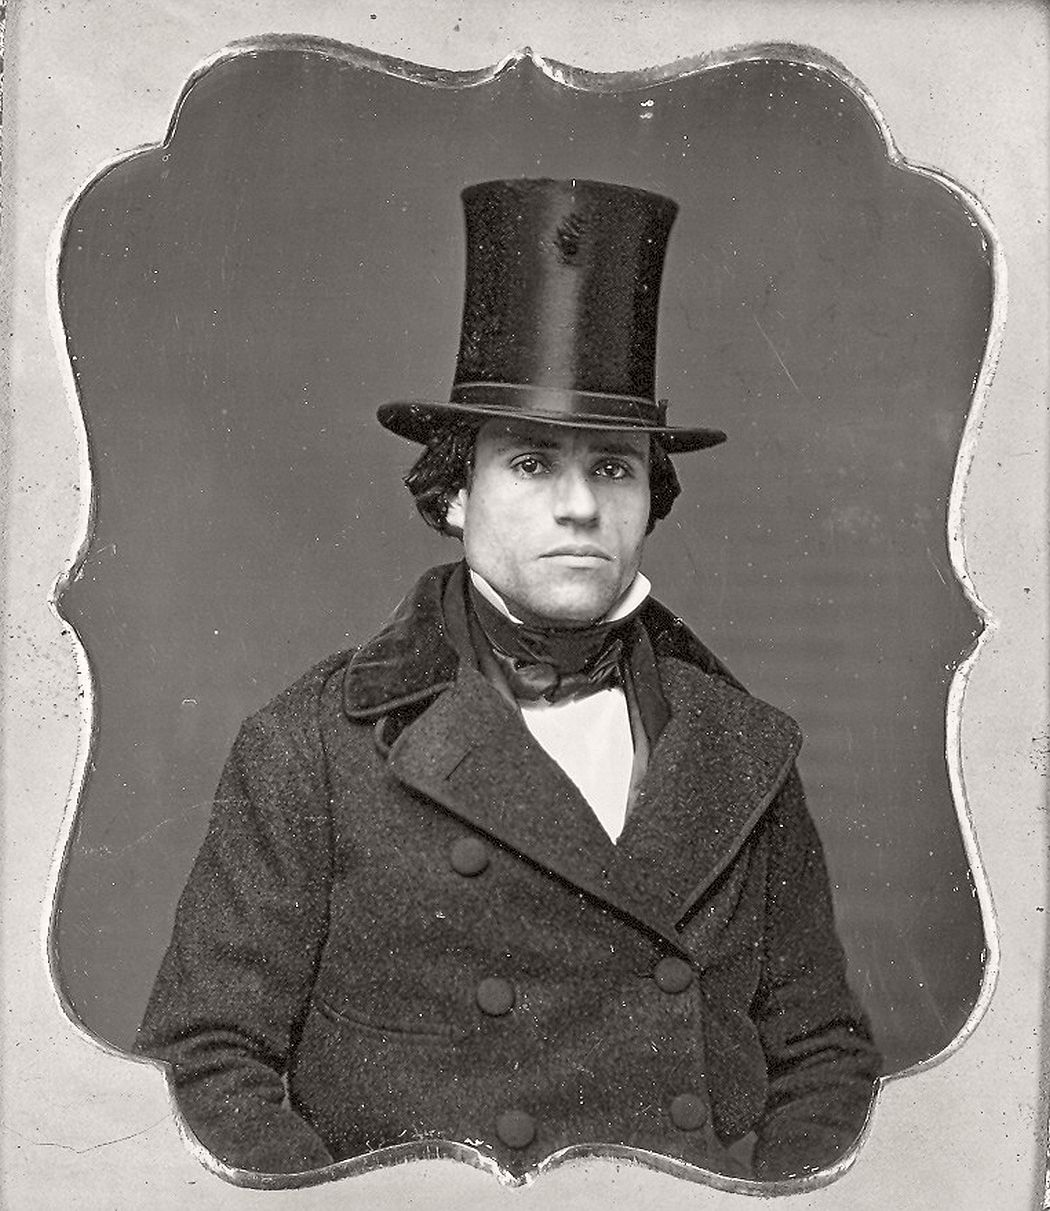 victorian-era-daguerreotype-of-men-in-hat-1850s-xix-century-03